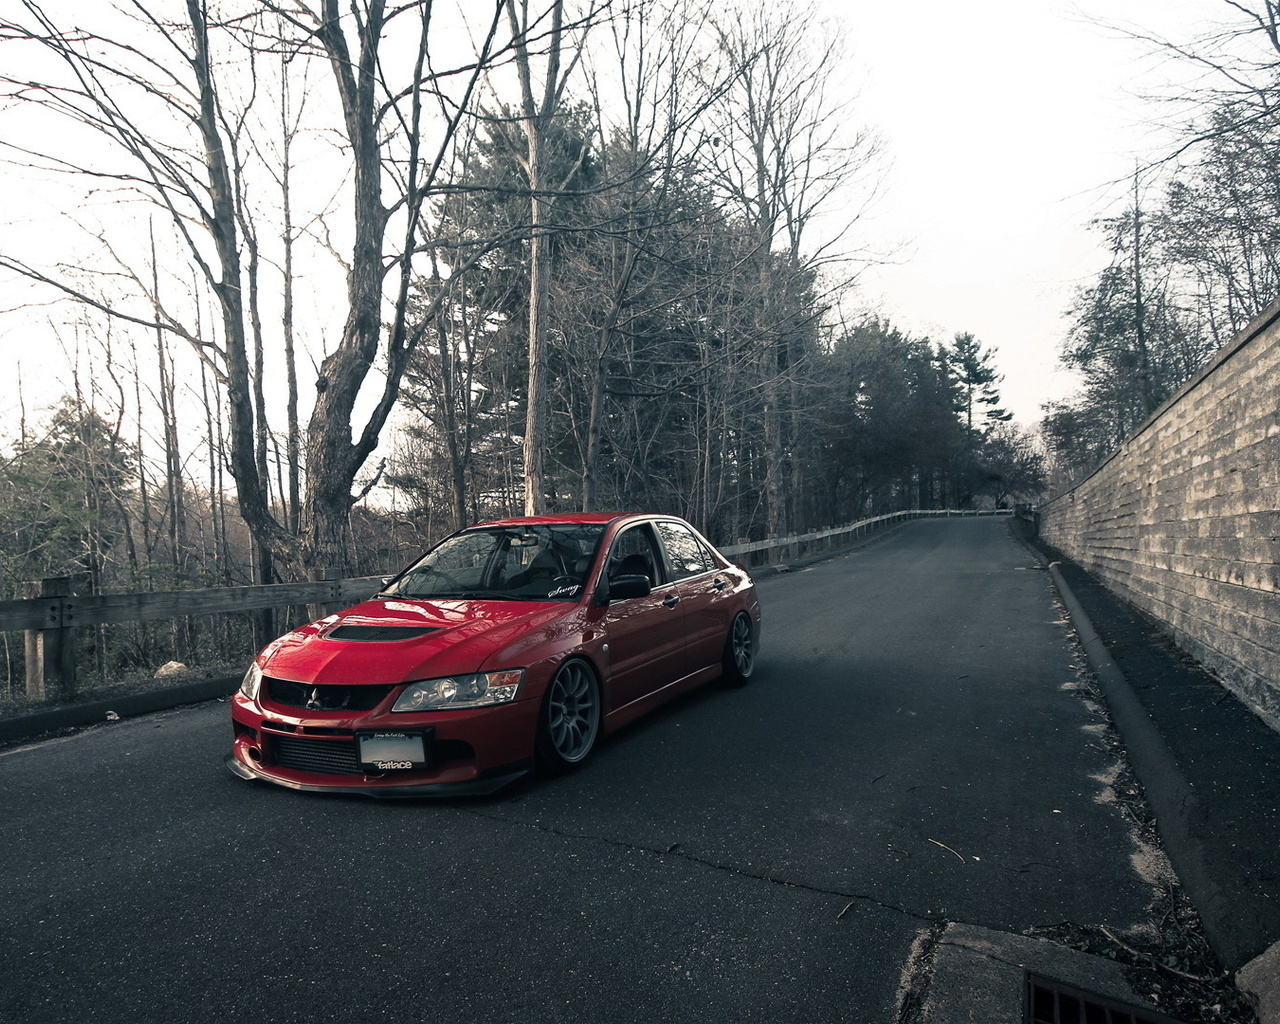 41631 download wallpaper Transport, Landscape, Auto, Roads, Subaru screensavers and pictures for free